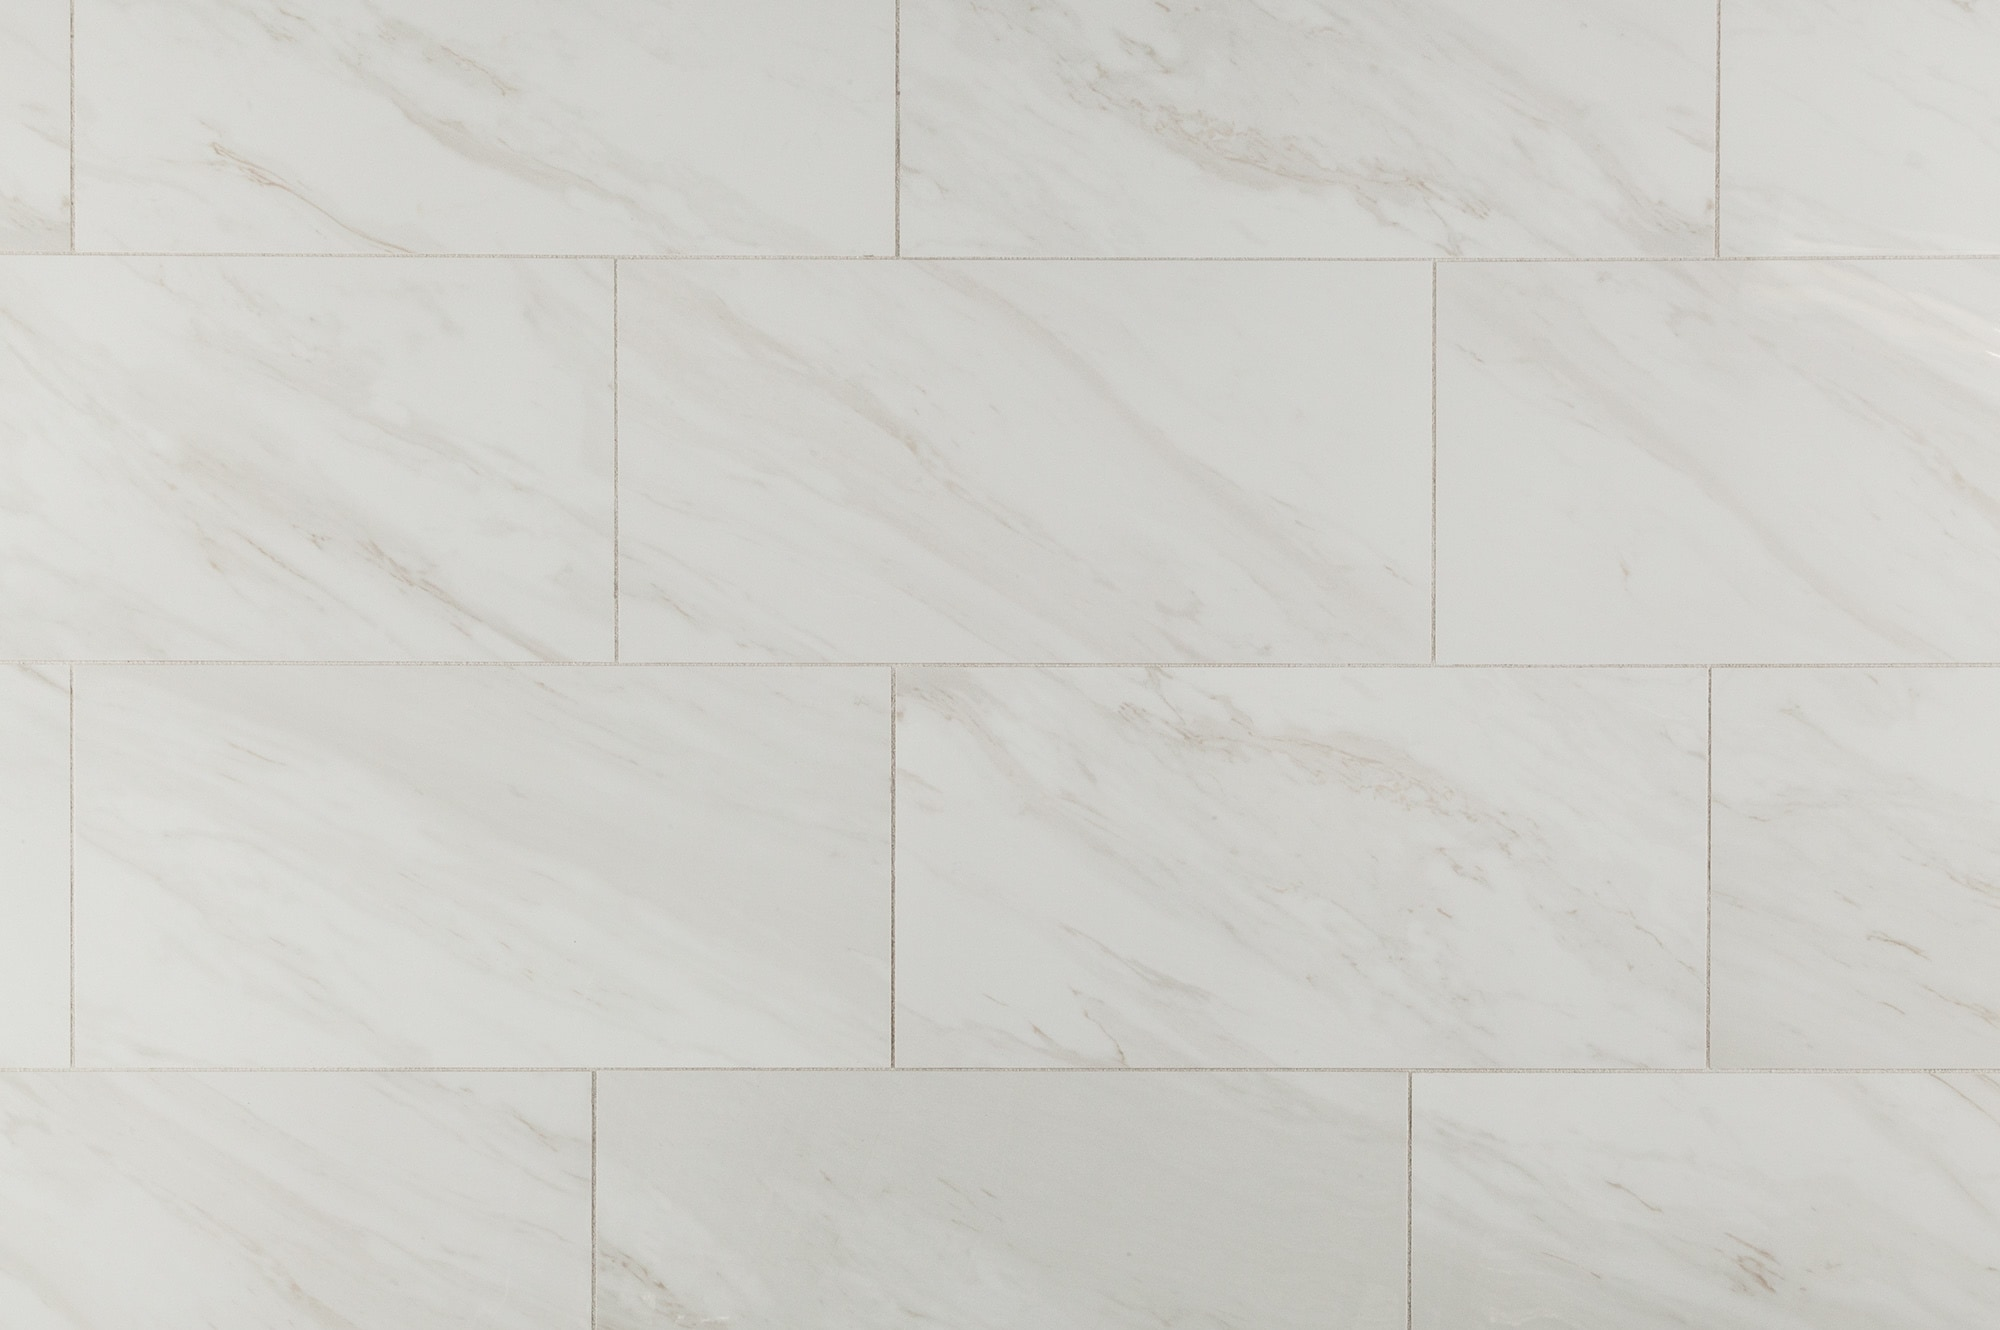 Free samples salerno porcelain tile carrara venato series free samples salerno porcelain tile carrara venato series venato 12x24 polished dailygadgetfo Choice Image